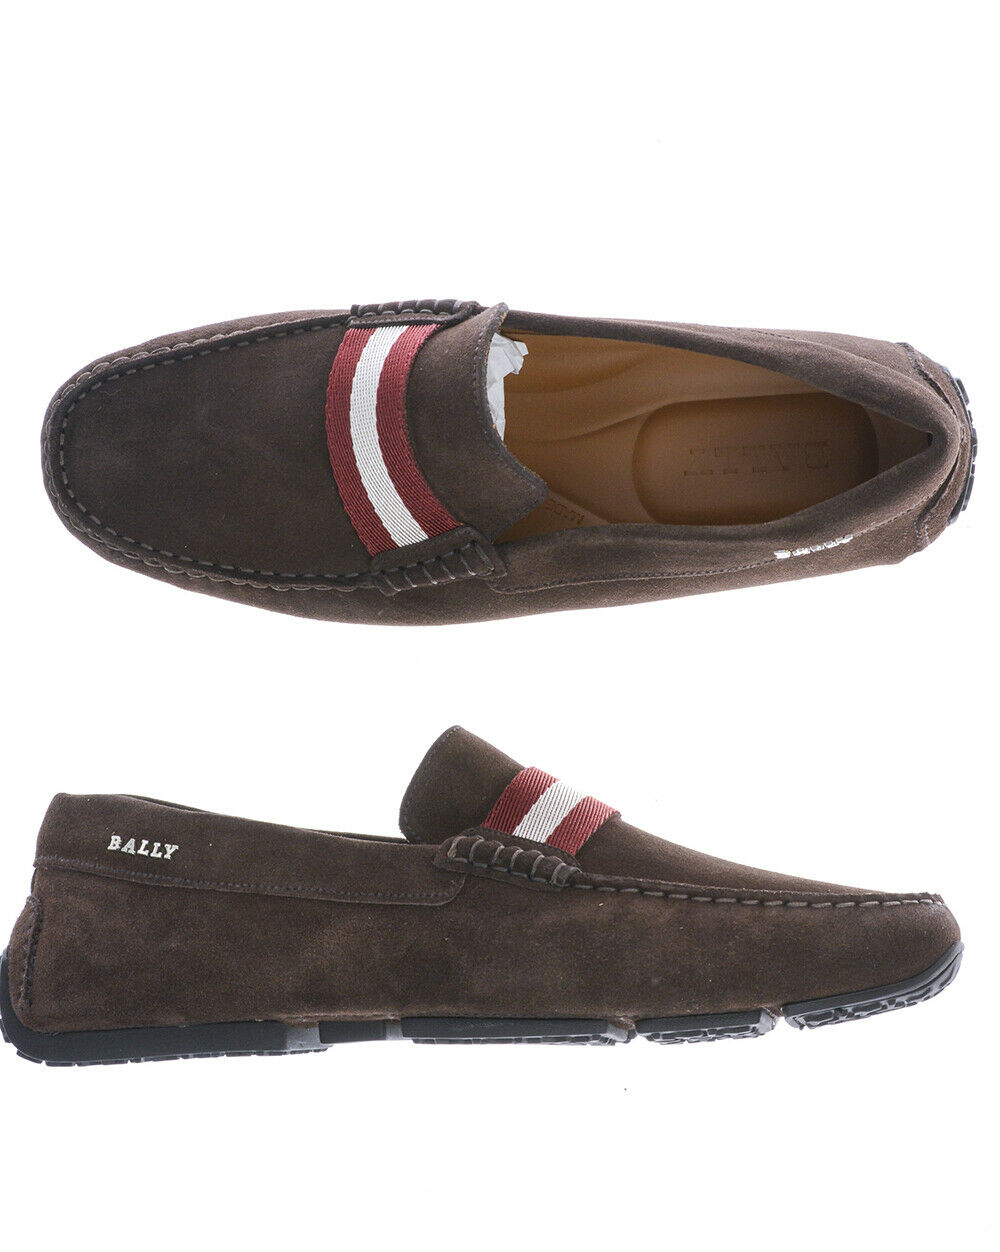 Mocassin Bally shoes PEARCE Cuir Homme brown 6206923 151 TL. 43,5 FAIRE OFFRE